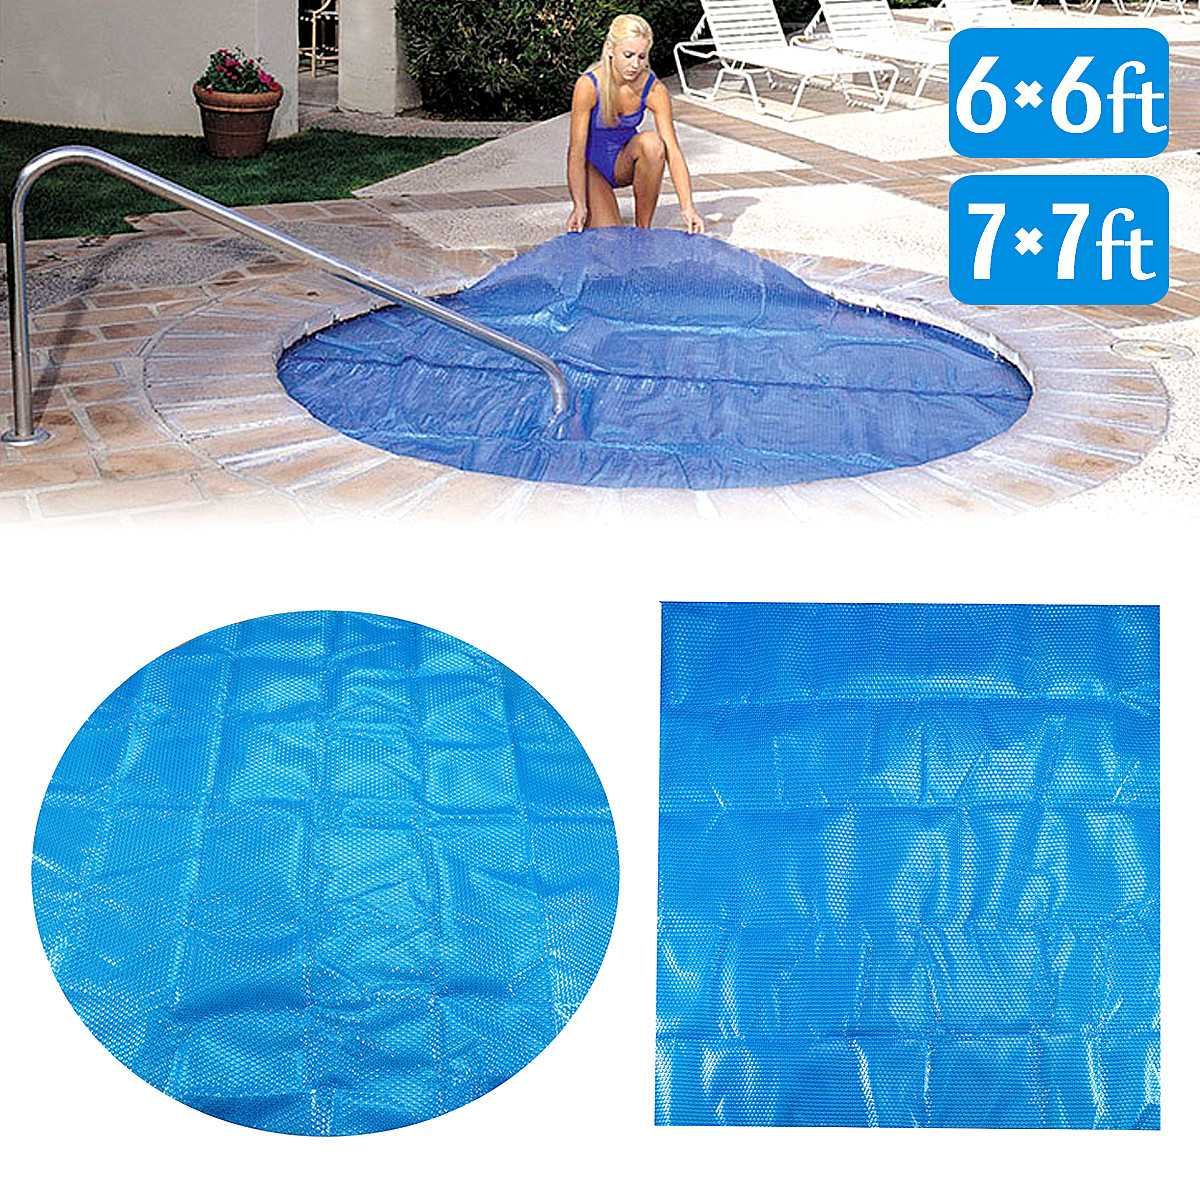 US $27.9 45% OFF|6ft/7ft Round/Square Swimming Pool Spa Hot Tub Cover 400m  Solar Thermal Blanket-in Pool & Accessories from Sports & Entertainment on  ...